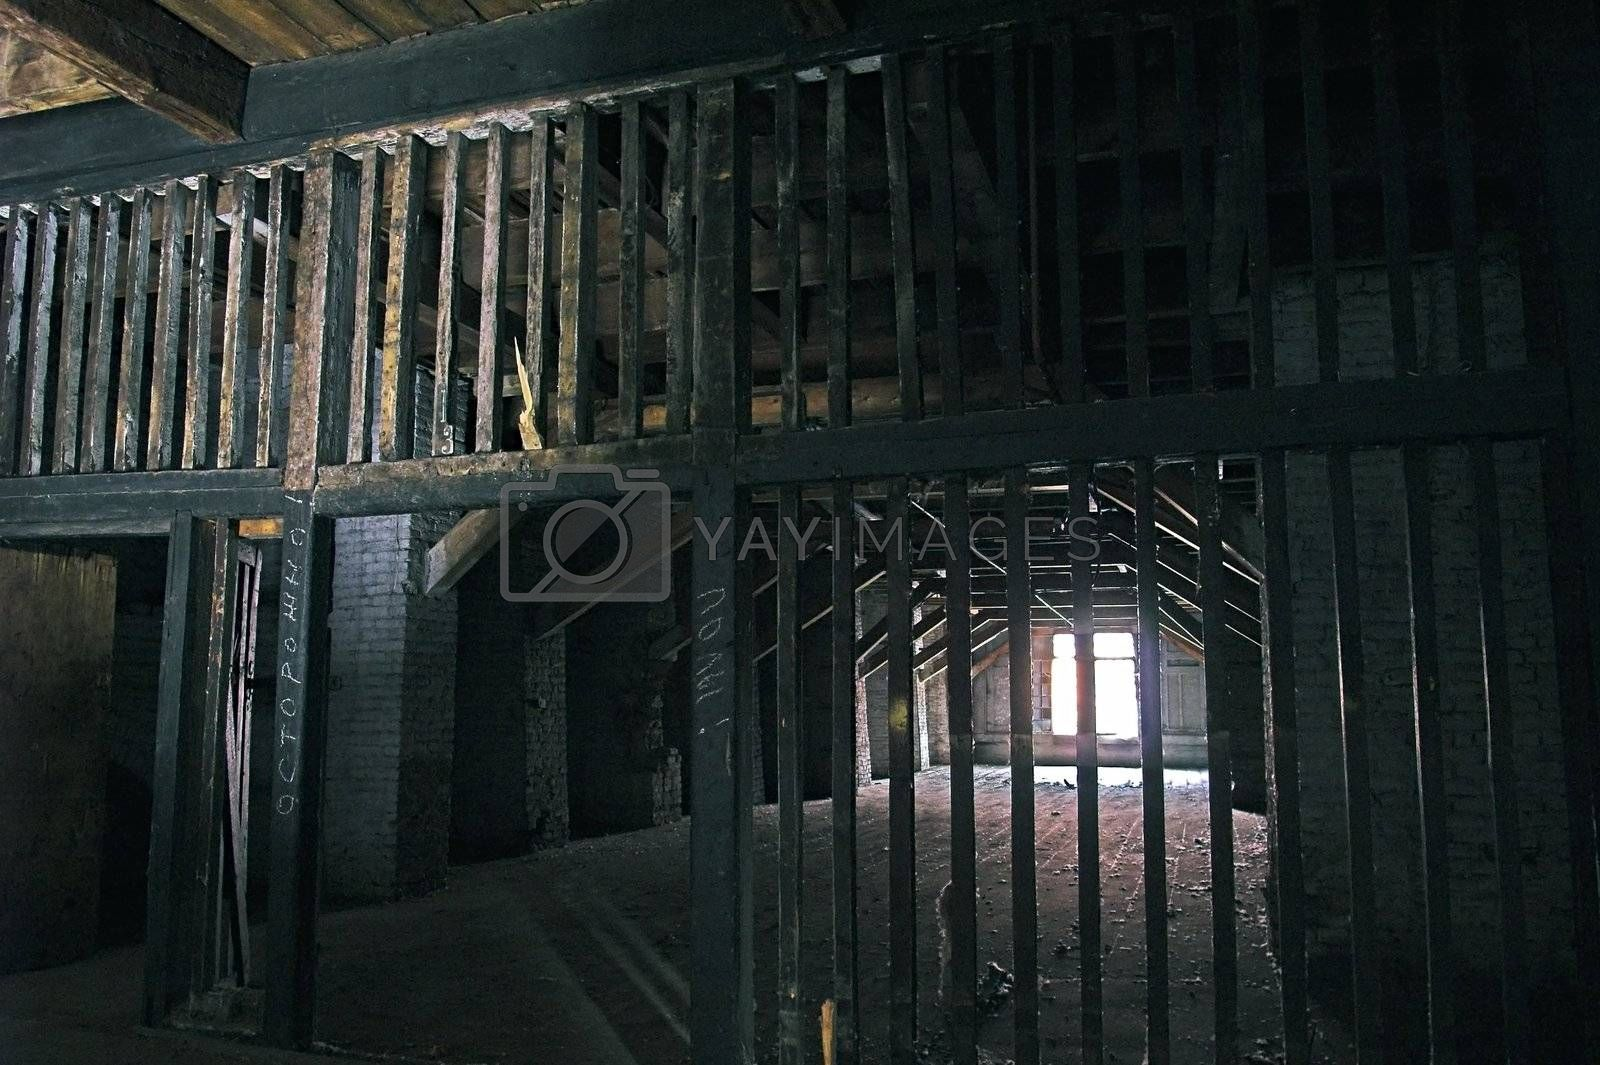 Abandoned Storehouse Building with Wooden Partitions.